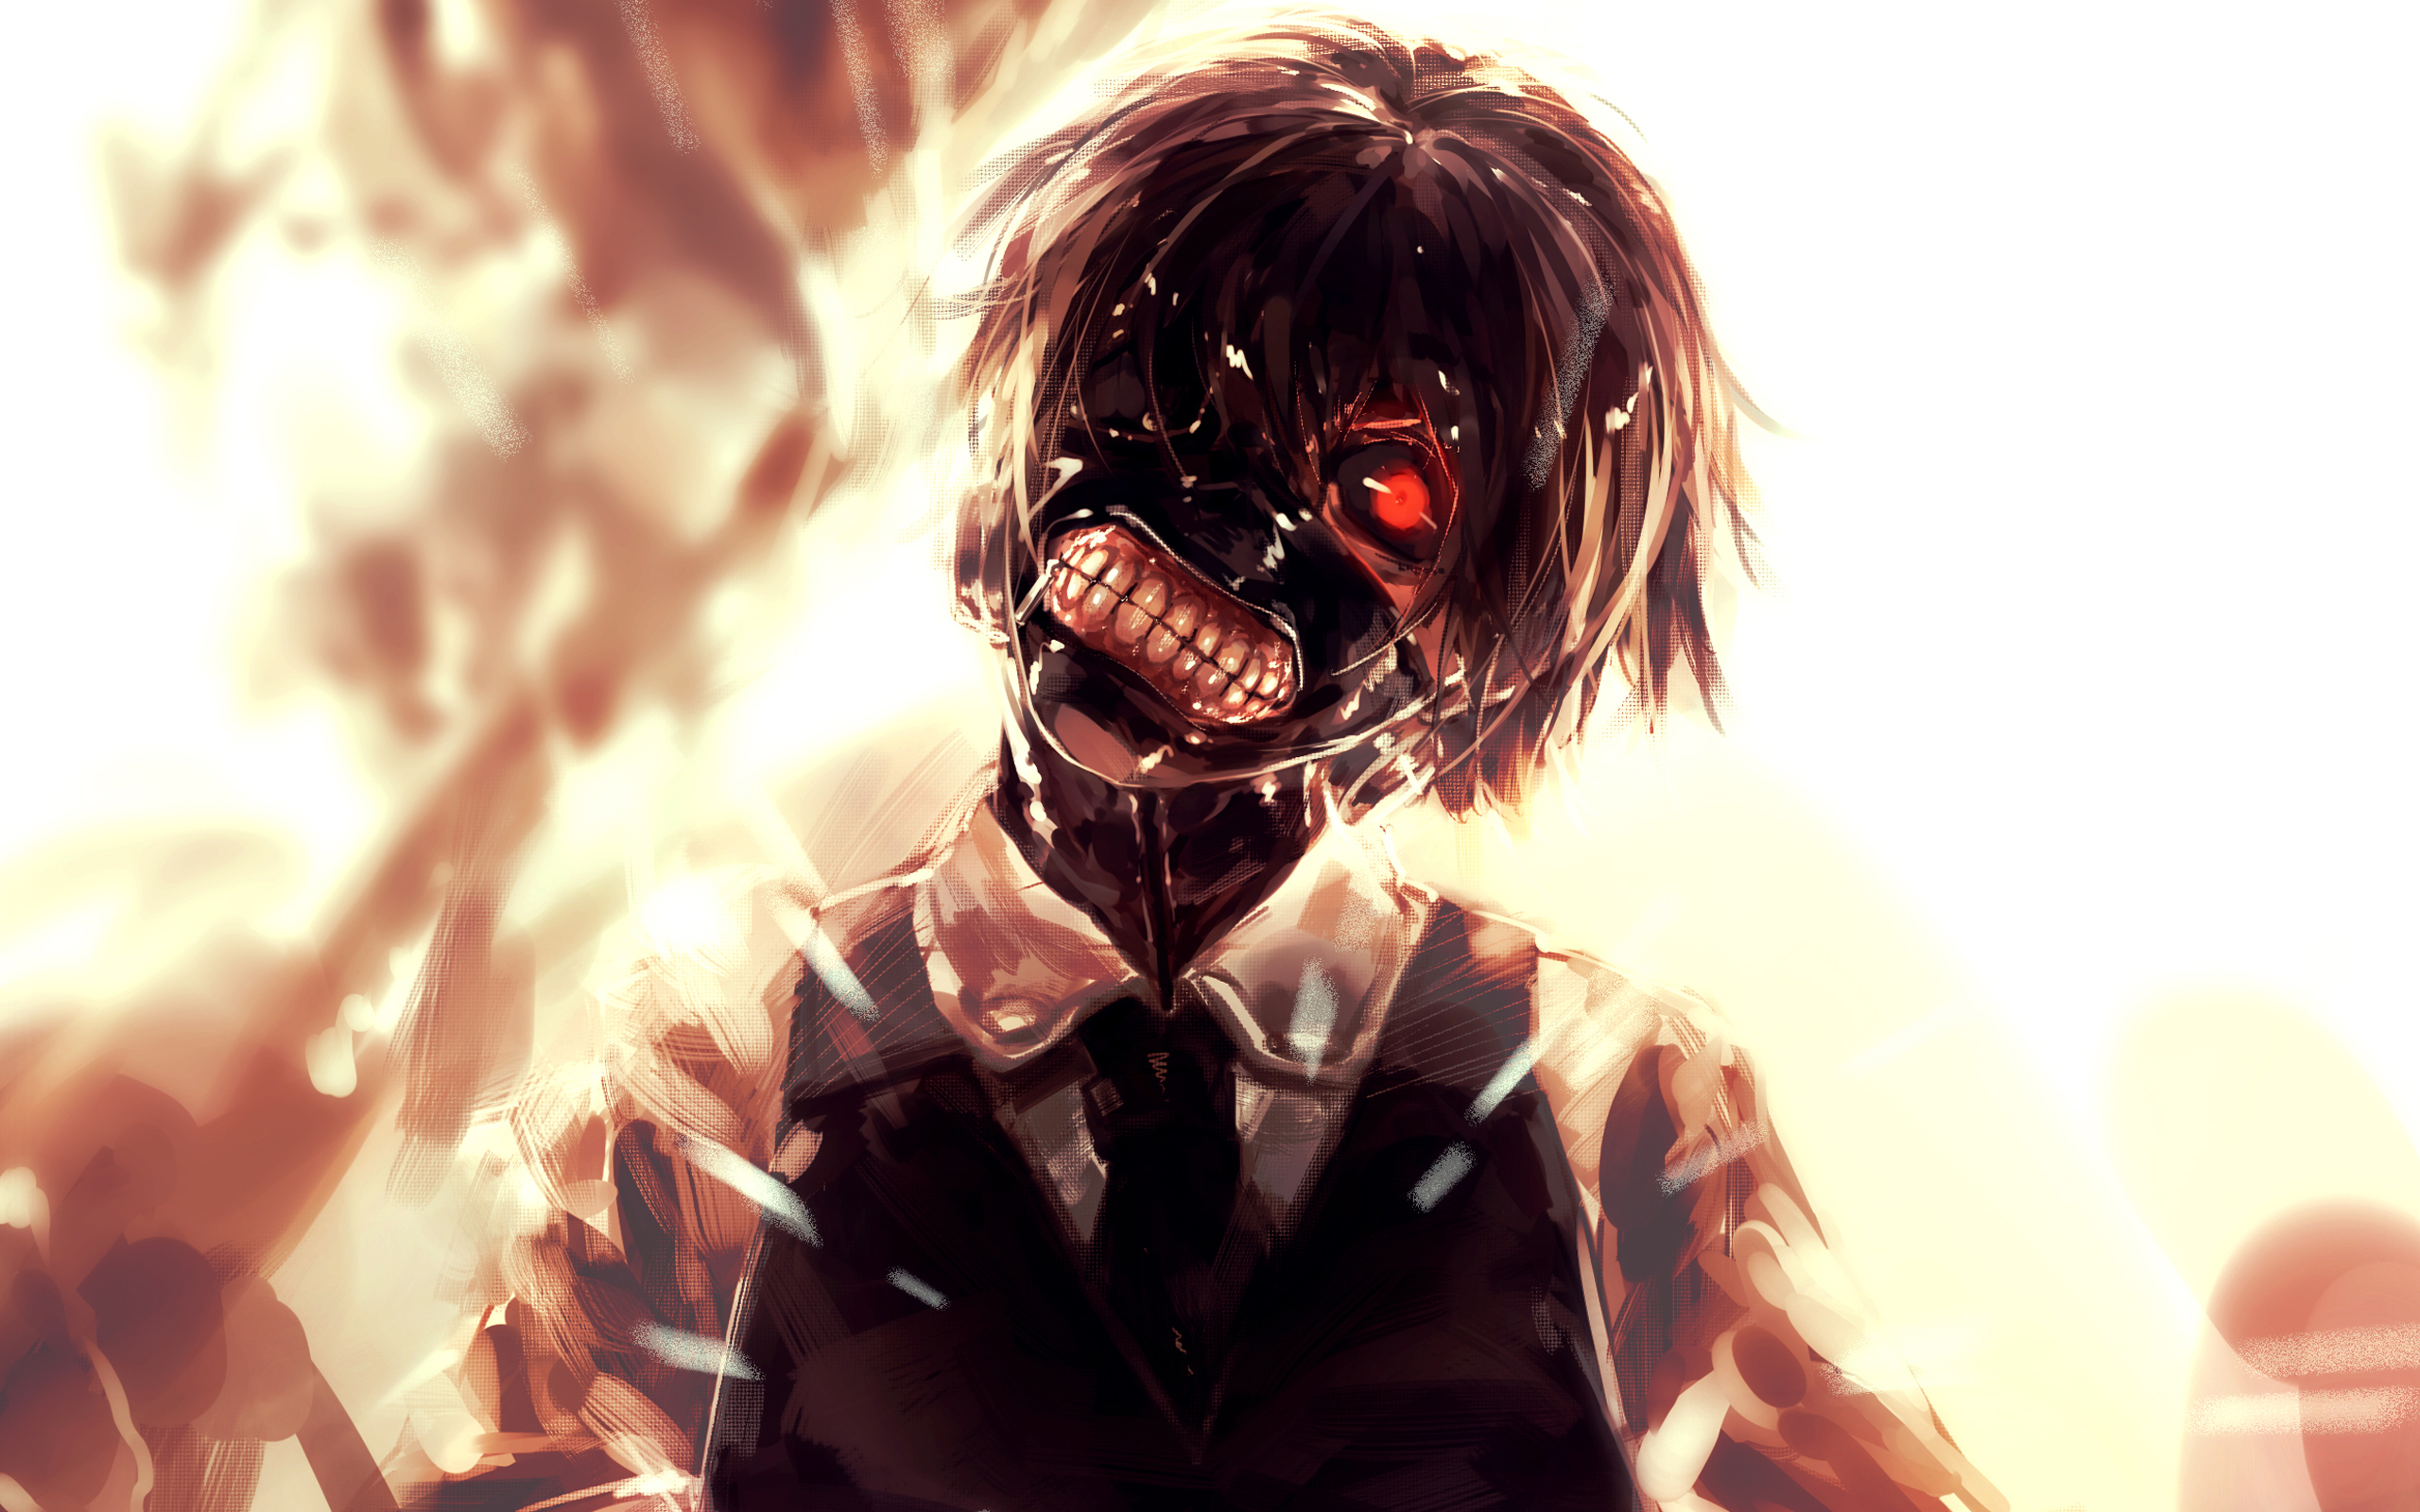 Dowload Walpaper Anime Tokyo Ghoul 2019: Tokyo Ghoul Wallpapers